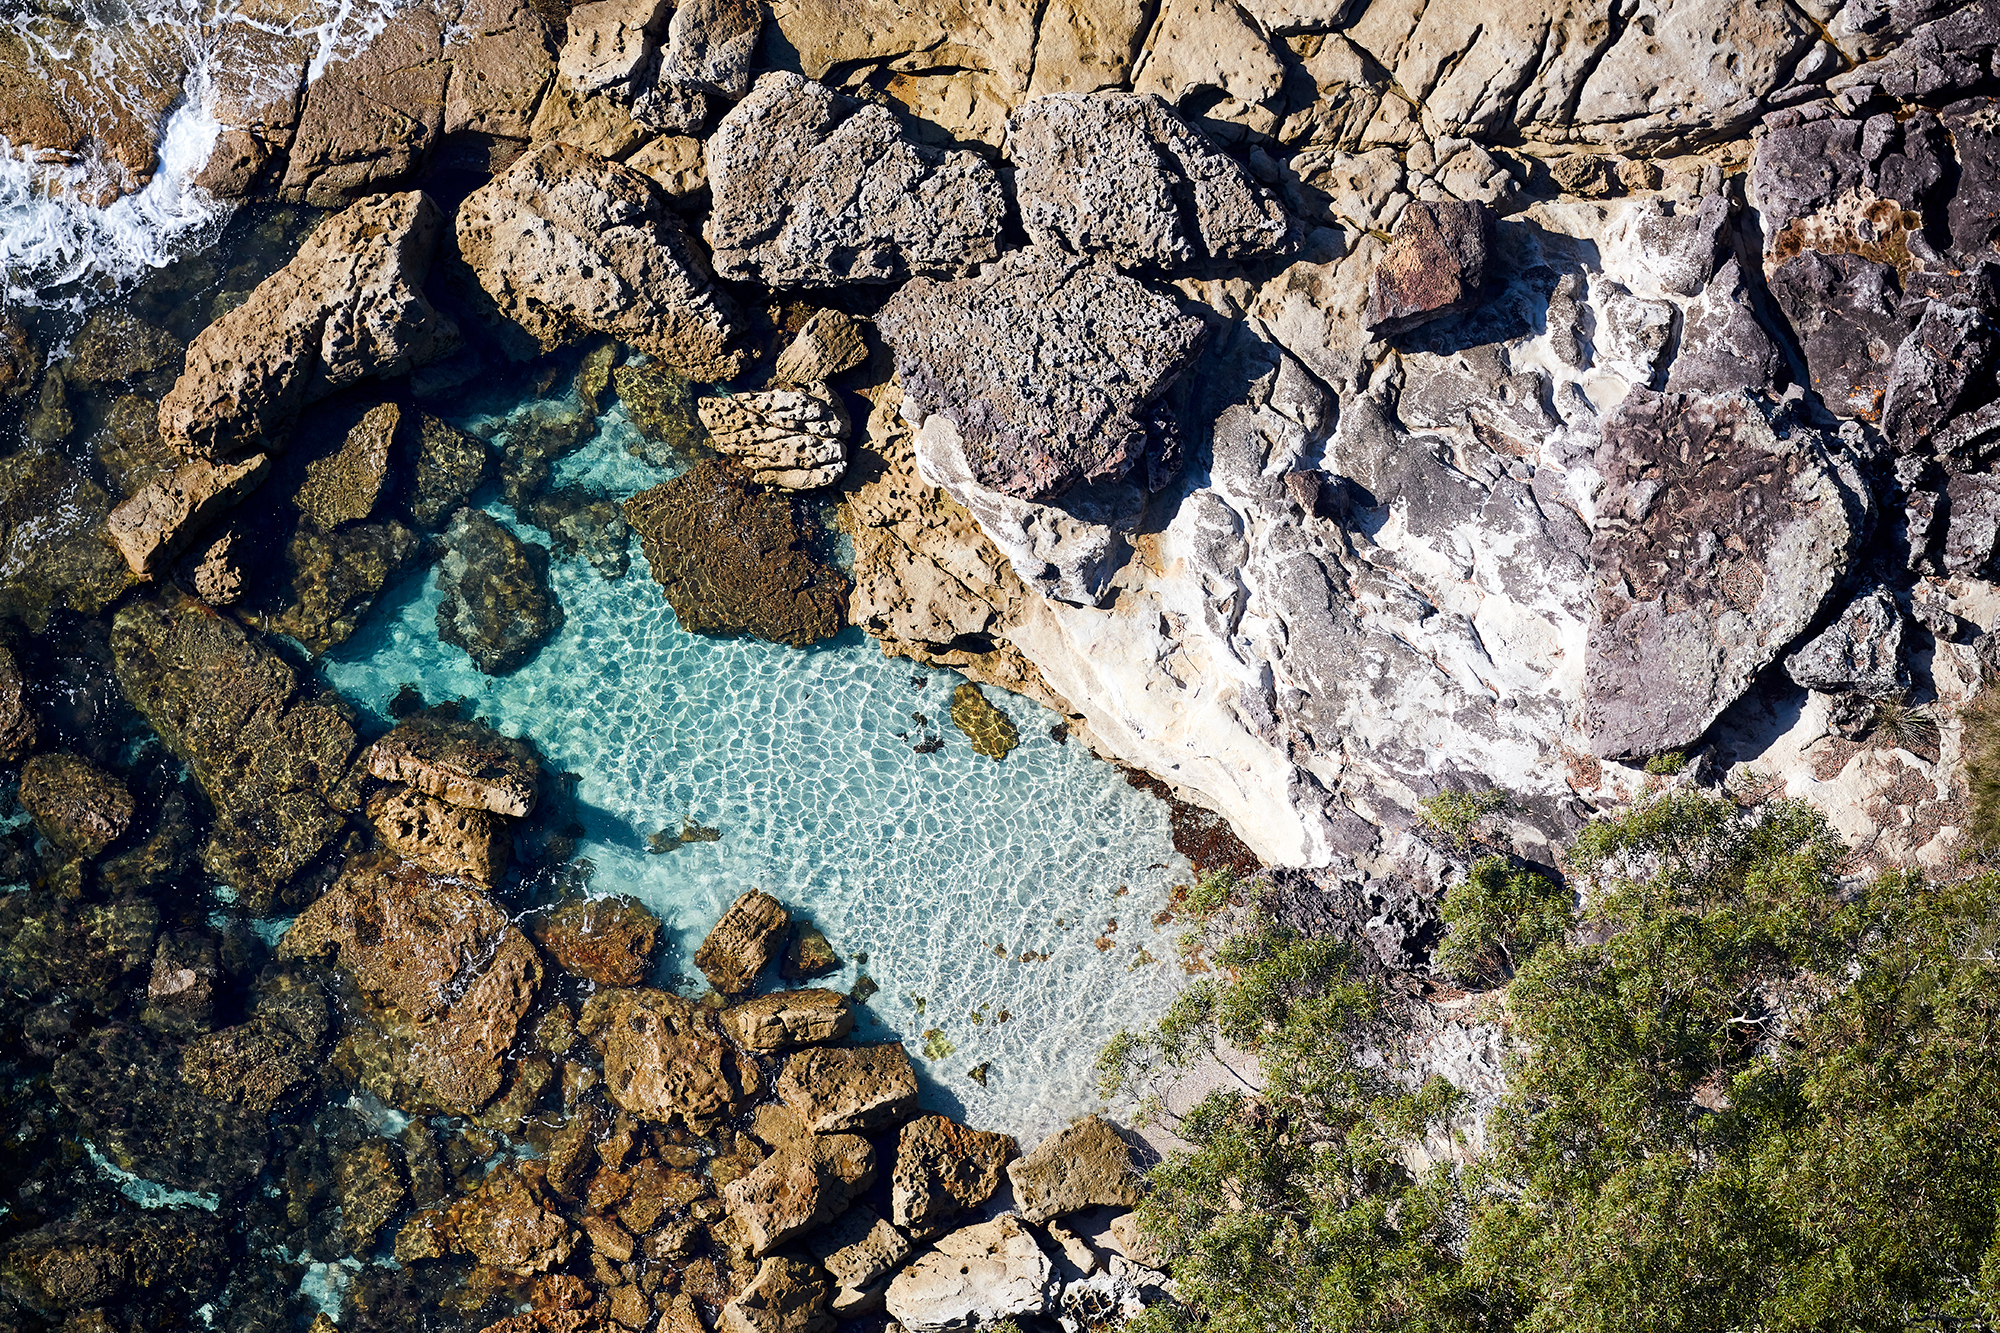 My kids would go nuts in that rock pool, Jervis Bay